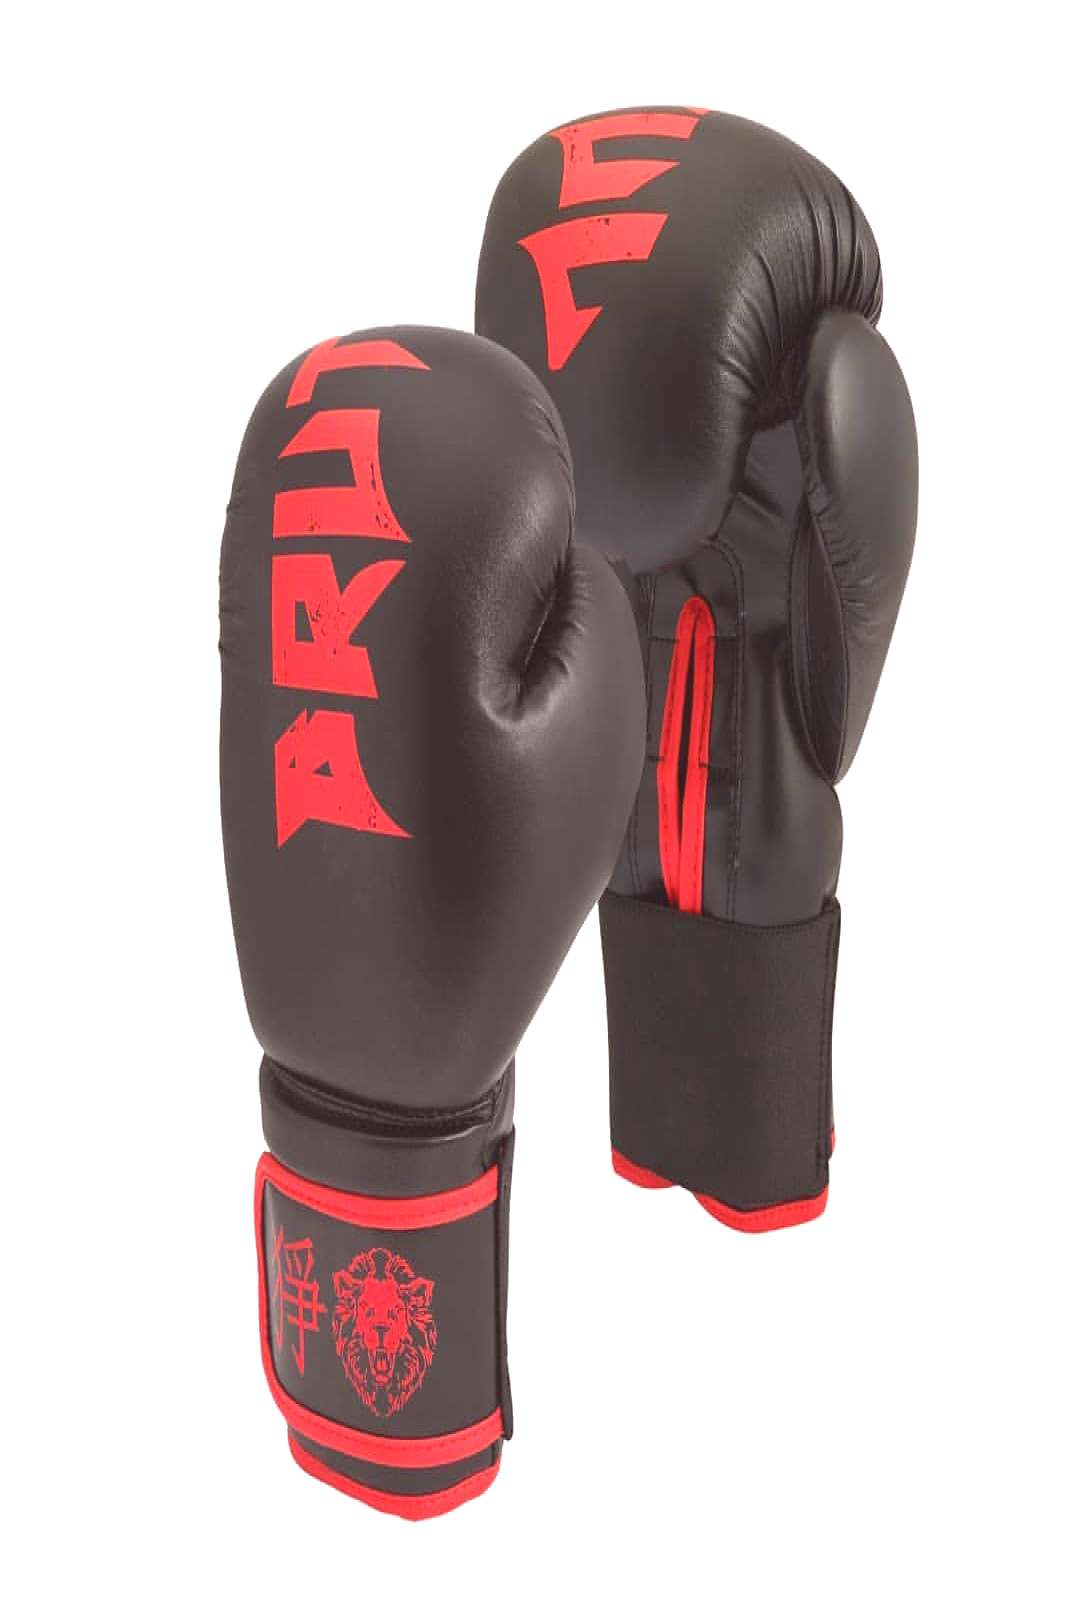 BRUTUL FIGHT GEAR on May 30 2020